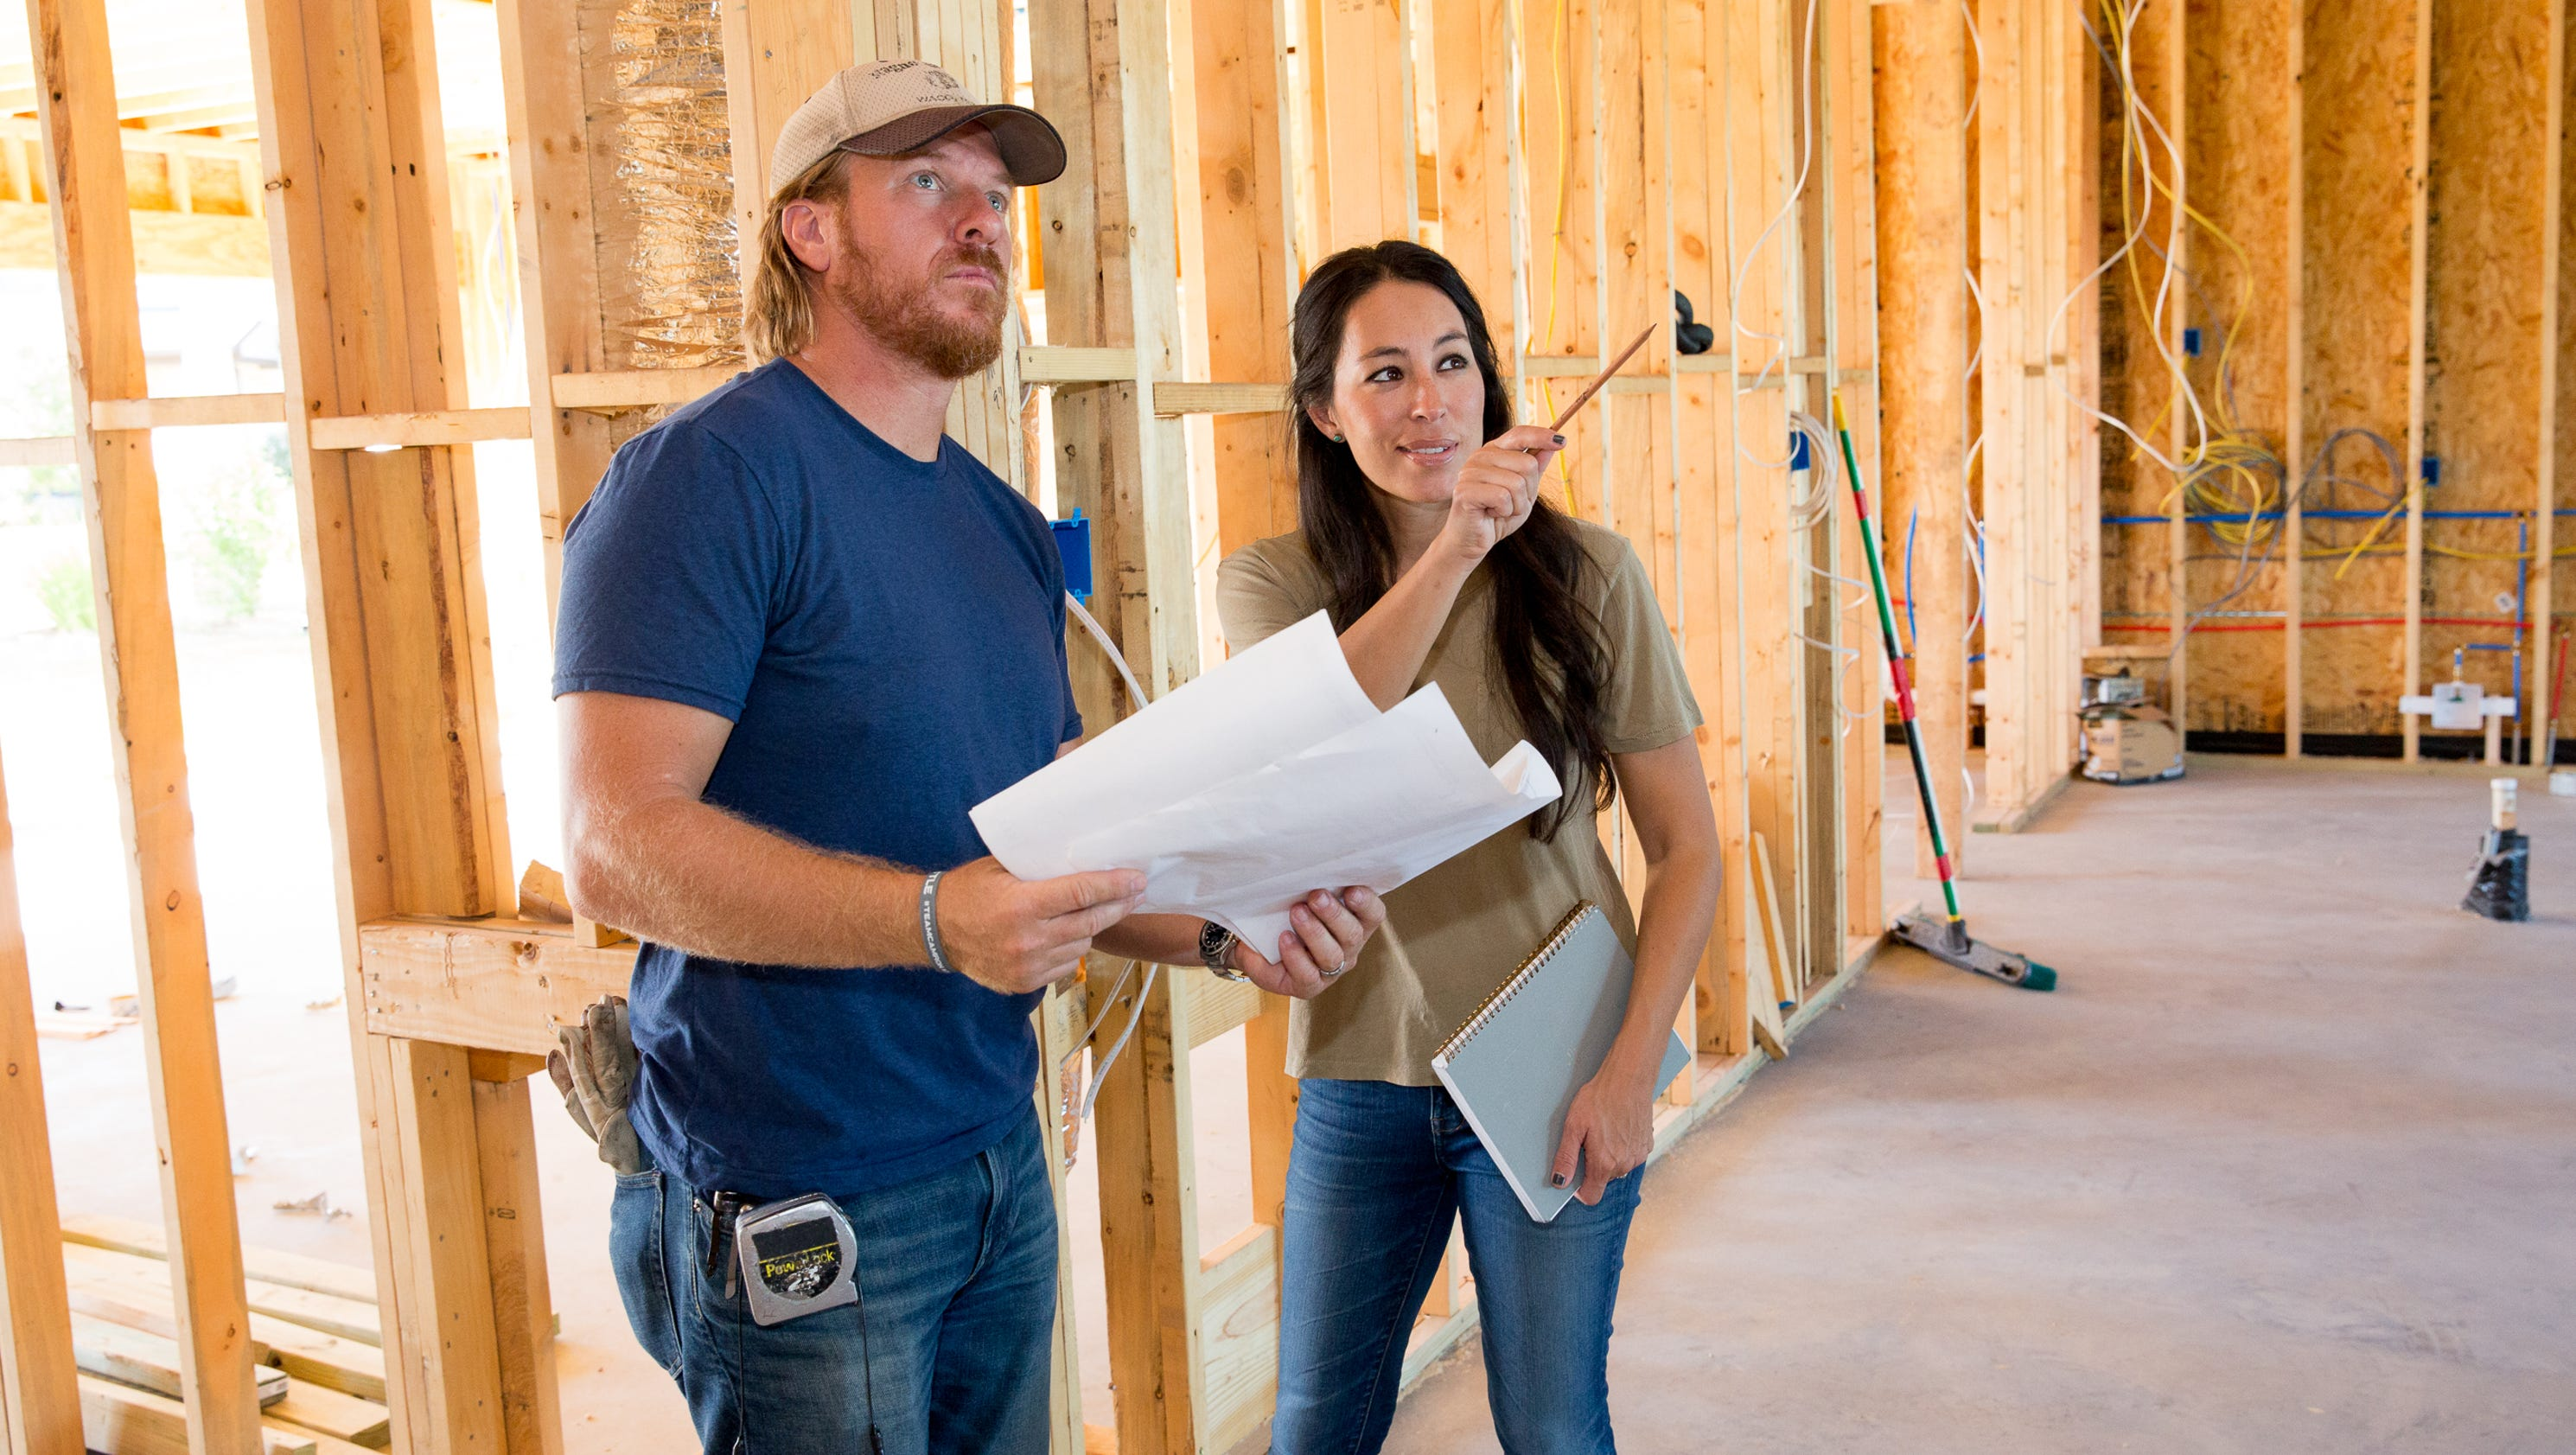 Chip and joanna gaines the appeal of hgtv 39 s fixer upper stars - Chip et joanna gaines ...